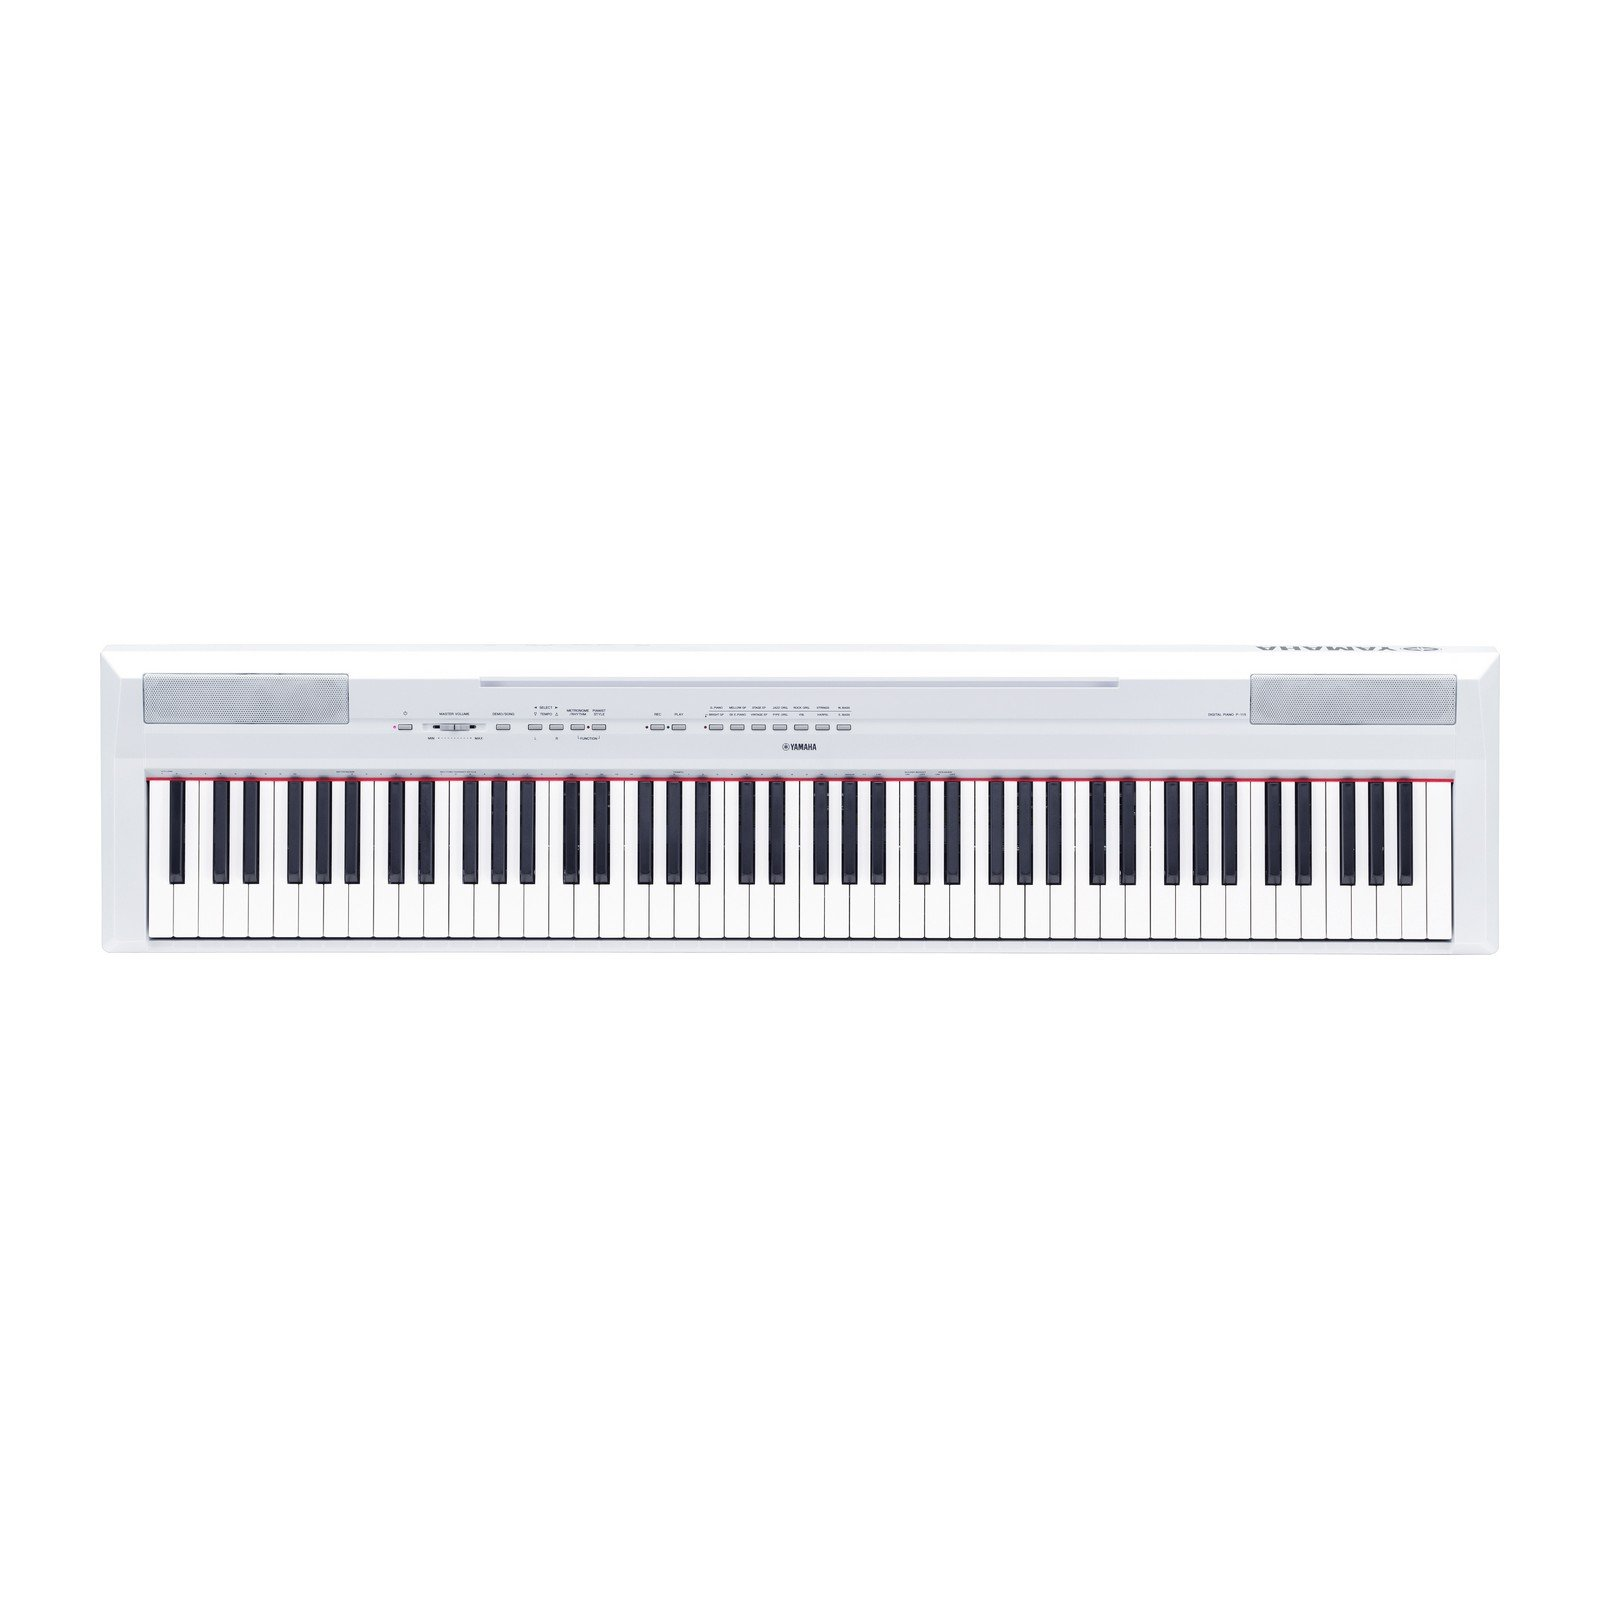 Yamaha P115 88-Key Weighted Action Digital Piano with Sustain Pedal, White by YAMAHA (Image #1)